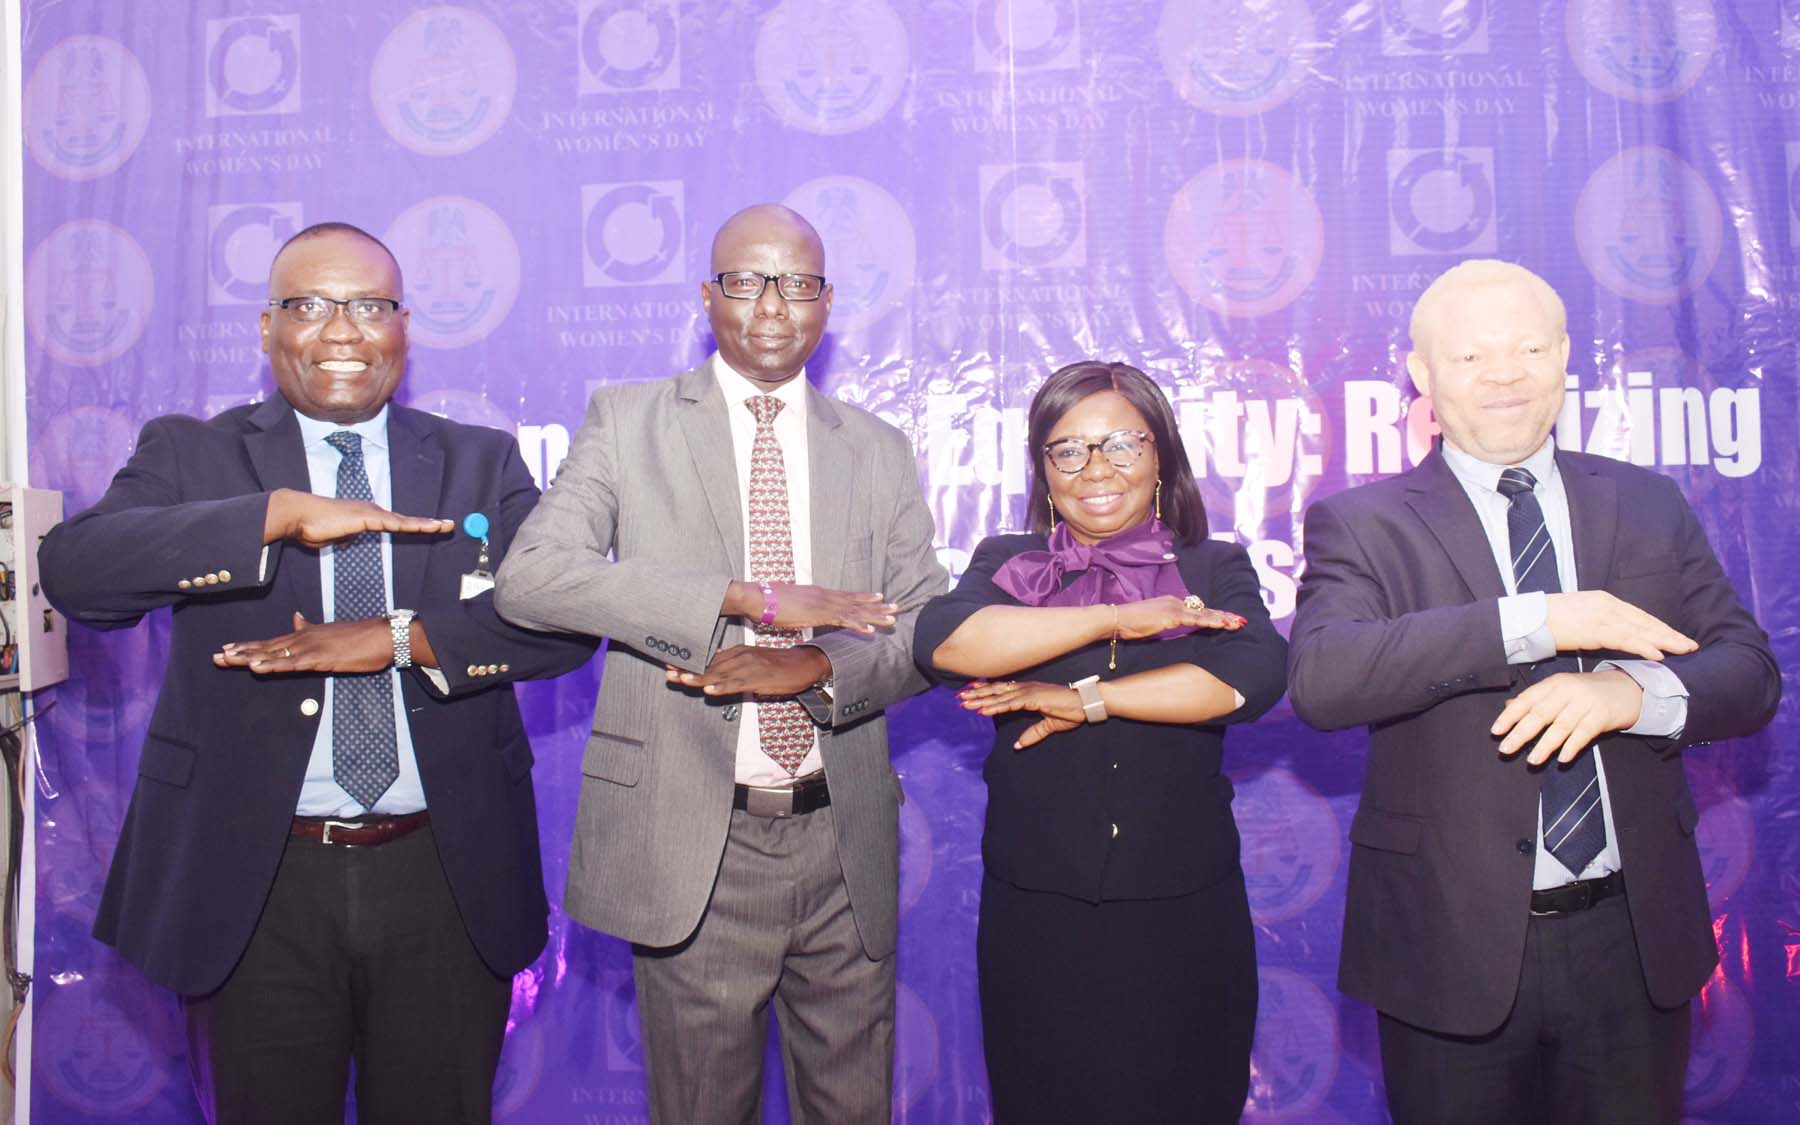 L-R, Acting Executive Commissioner Corporate Services, Securities and Exchange Commission Mr Edward Okolo , Acting Executive Commissioner,  Operations, SEC  Mr Isyaku Tilde, Acting Director General SEC  Ms Mary Uduk and Acting Executive Commissioner Legal and Enforcement  SEC, Mr Reginald Karawusa during 2020 International Women's  Day Celebration in Abuja, Monday